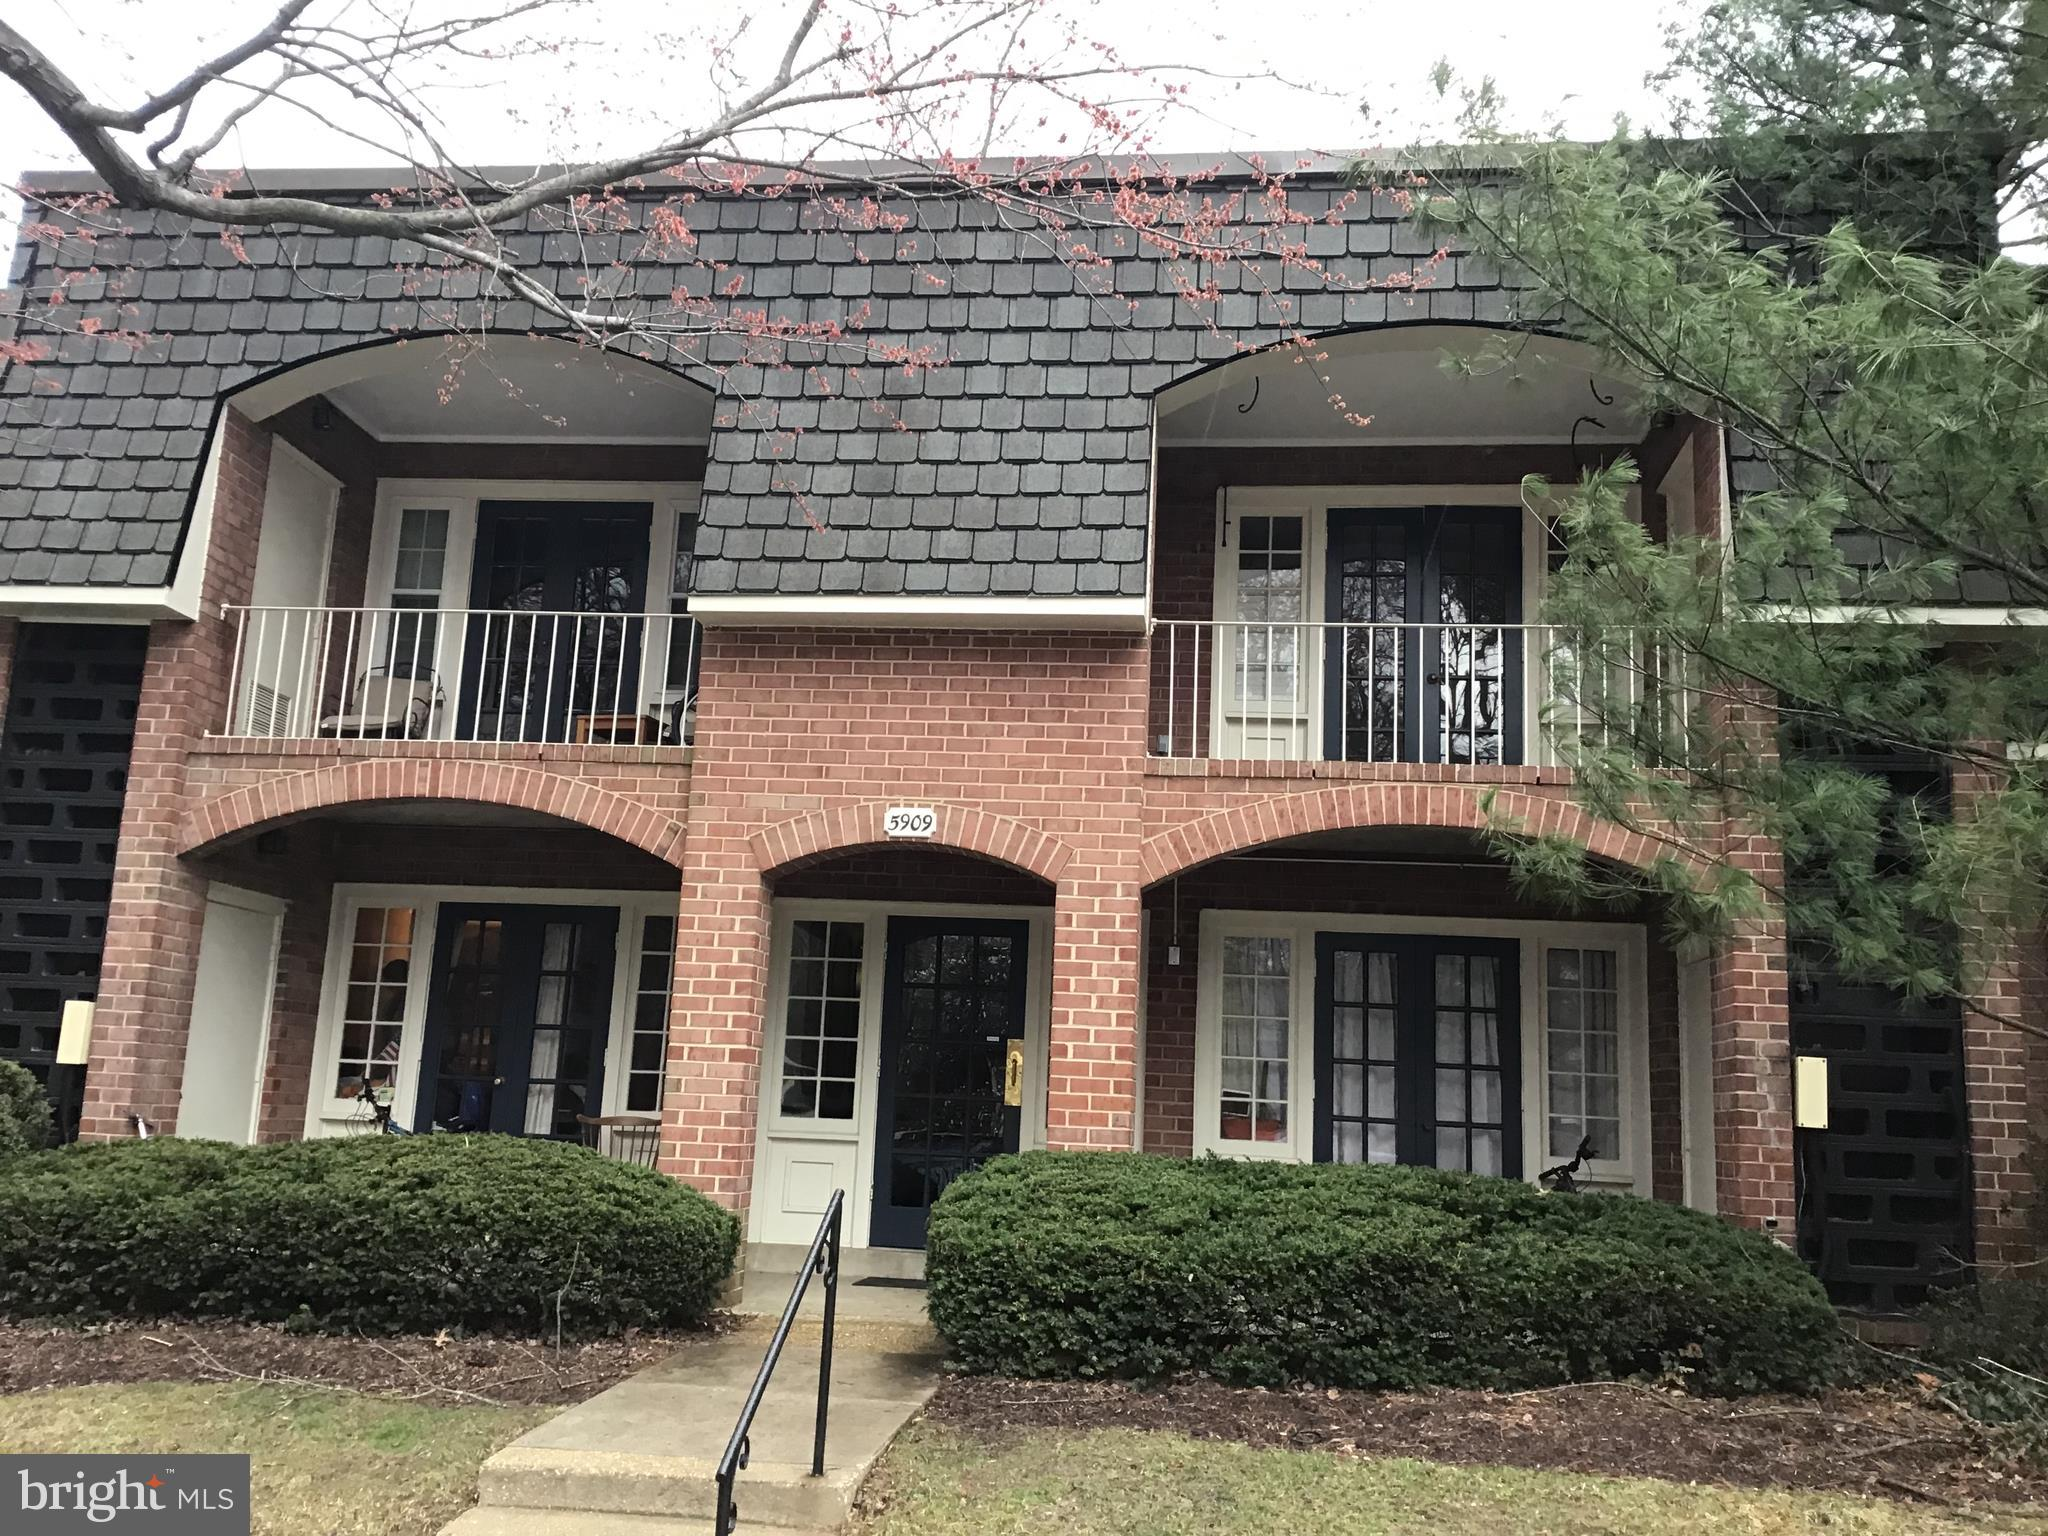 OPEN HOUSE SATURDAY 3/23 & SUNDAY 3/24 1-4PM*Top floor condo! This is a rare 1 Bedroom w/Den.  The den has a full egress window so if you add a door it can be used as a bedroom.  Fresh paint throughout!  New carpet just installed.  Condo fee includes: Gas Heat, Water, Sewer, Exterior Building Maintenance, 2 Community Pools including one across the street, Tennis, Tot-Lots, Party Room, etc